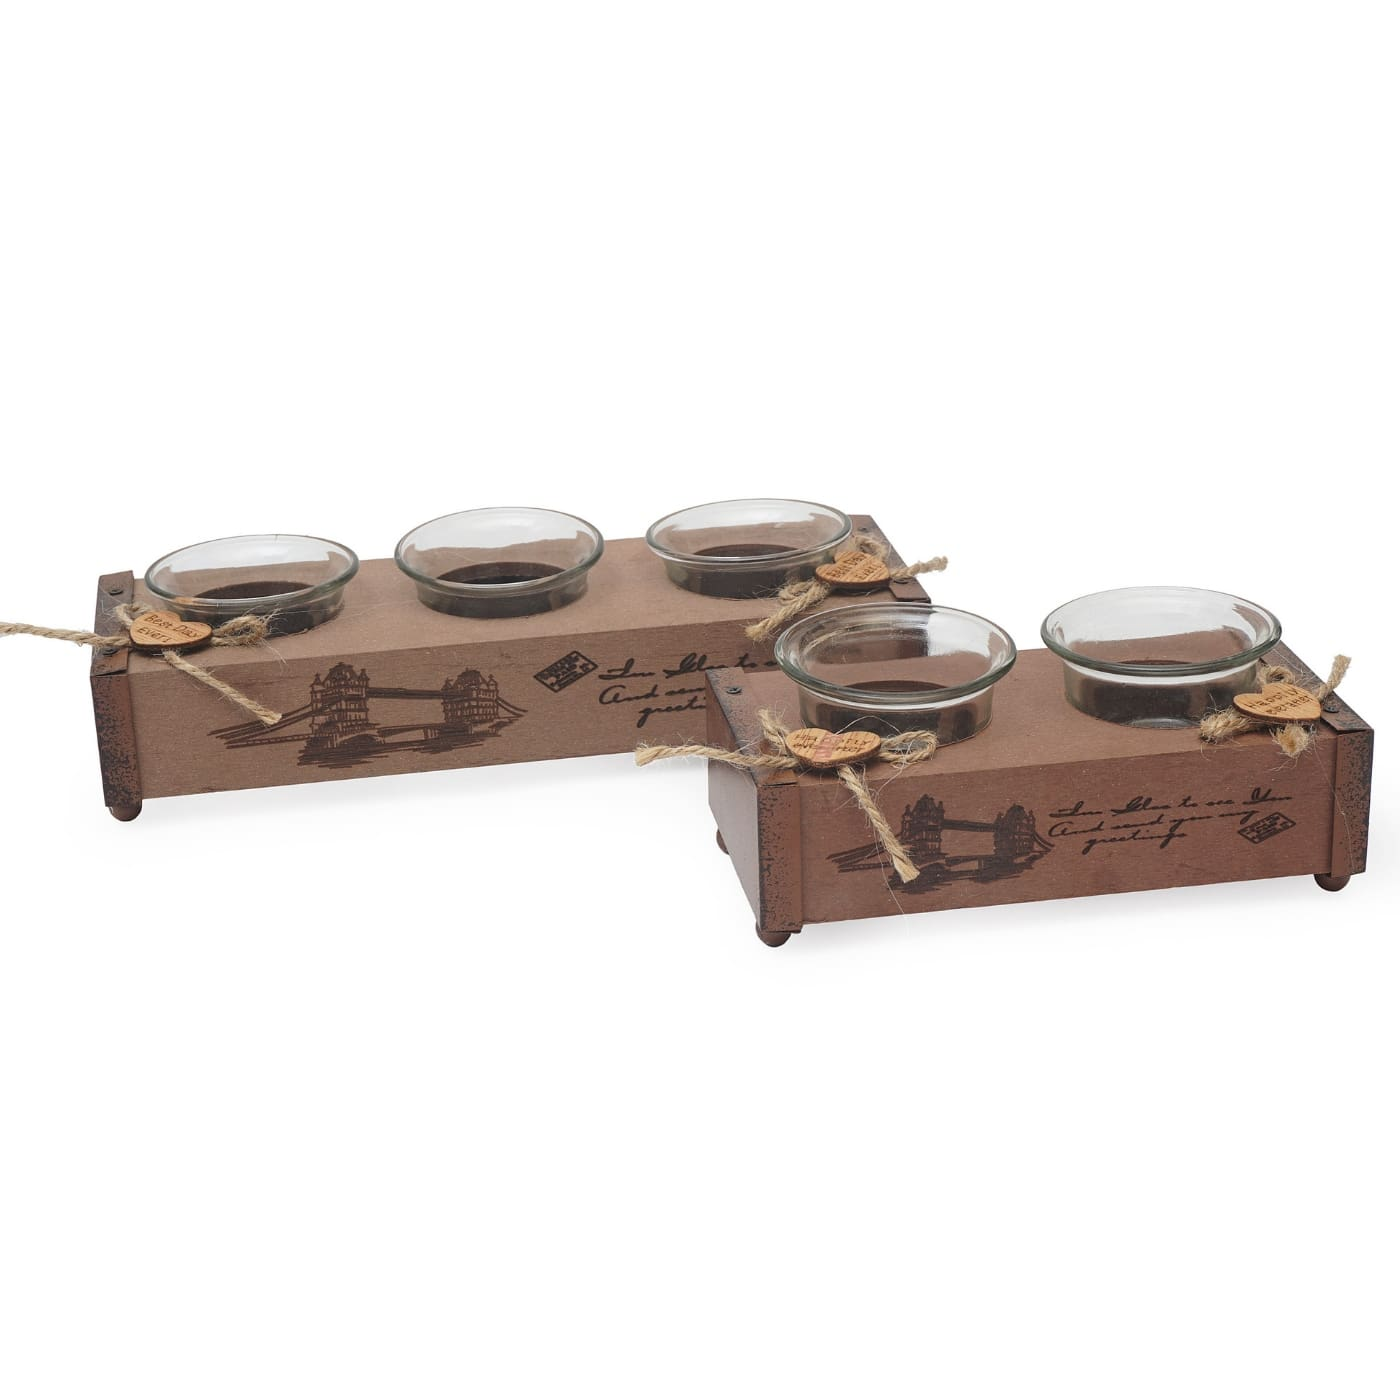 Wooden set of candle holders